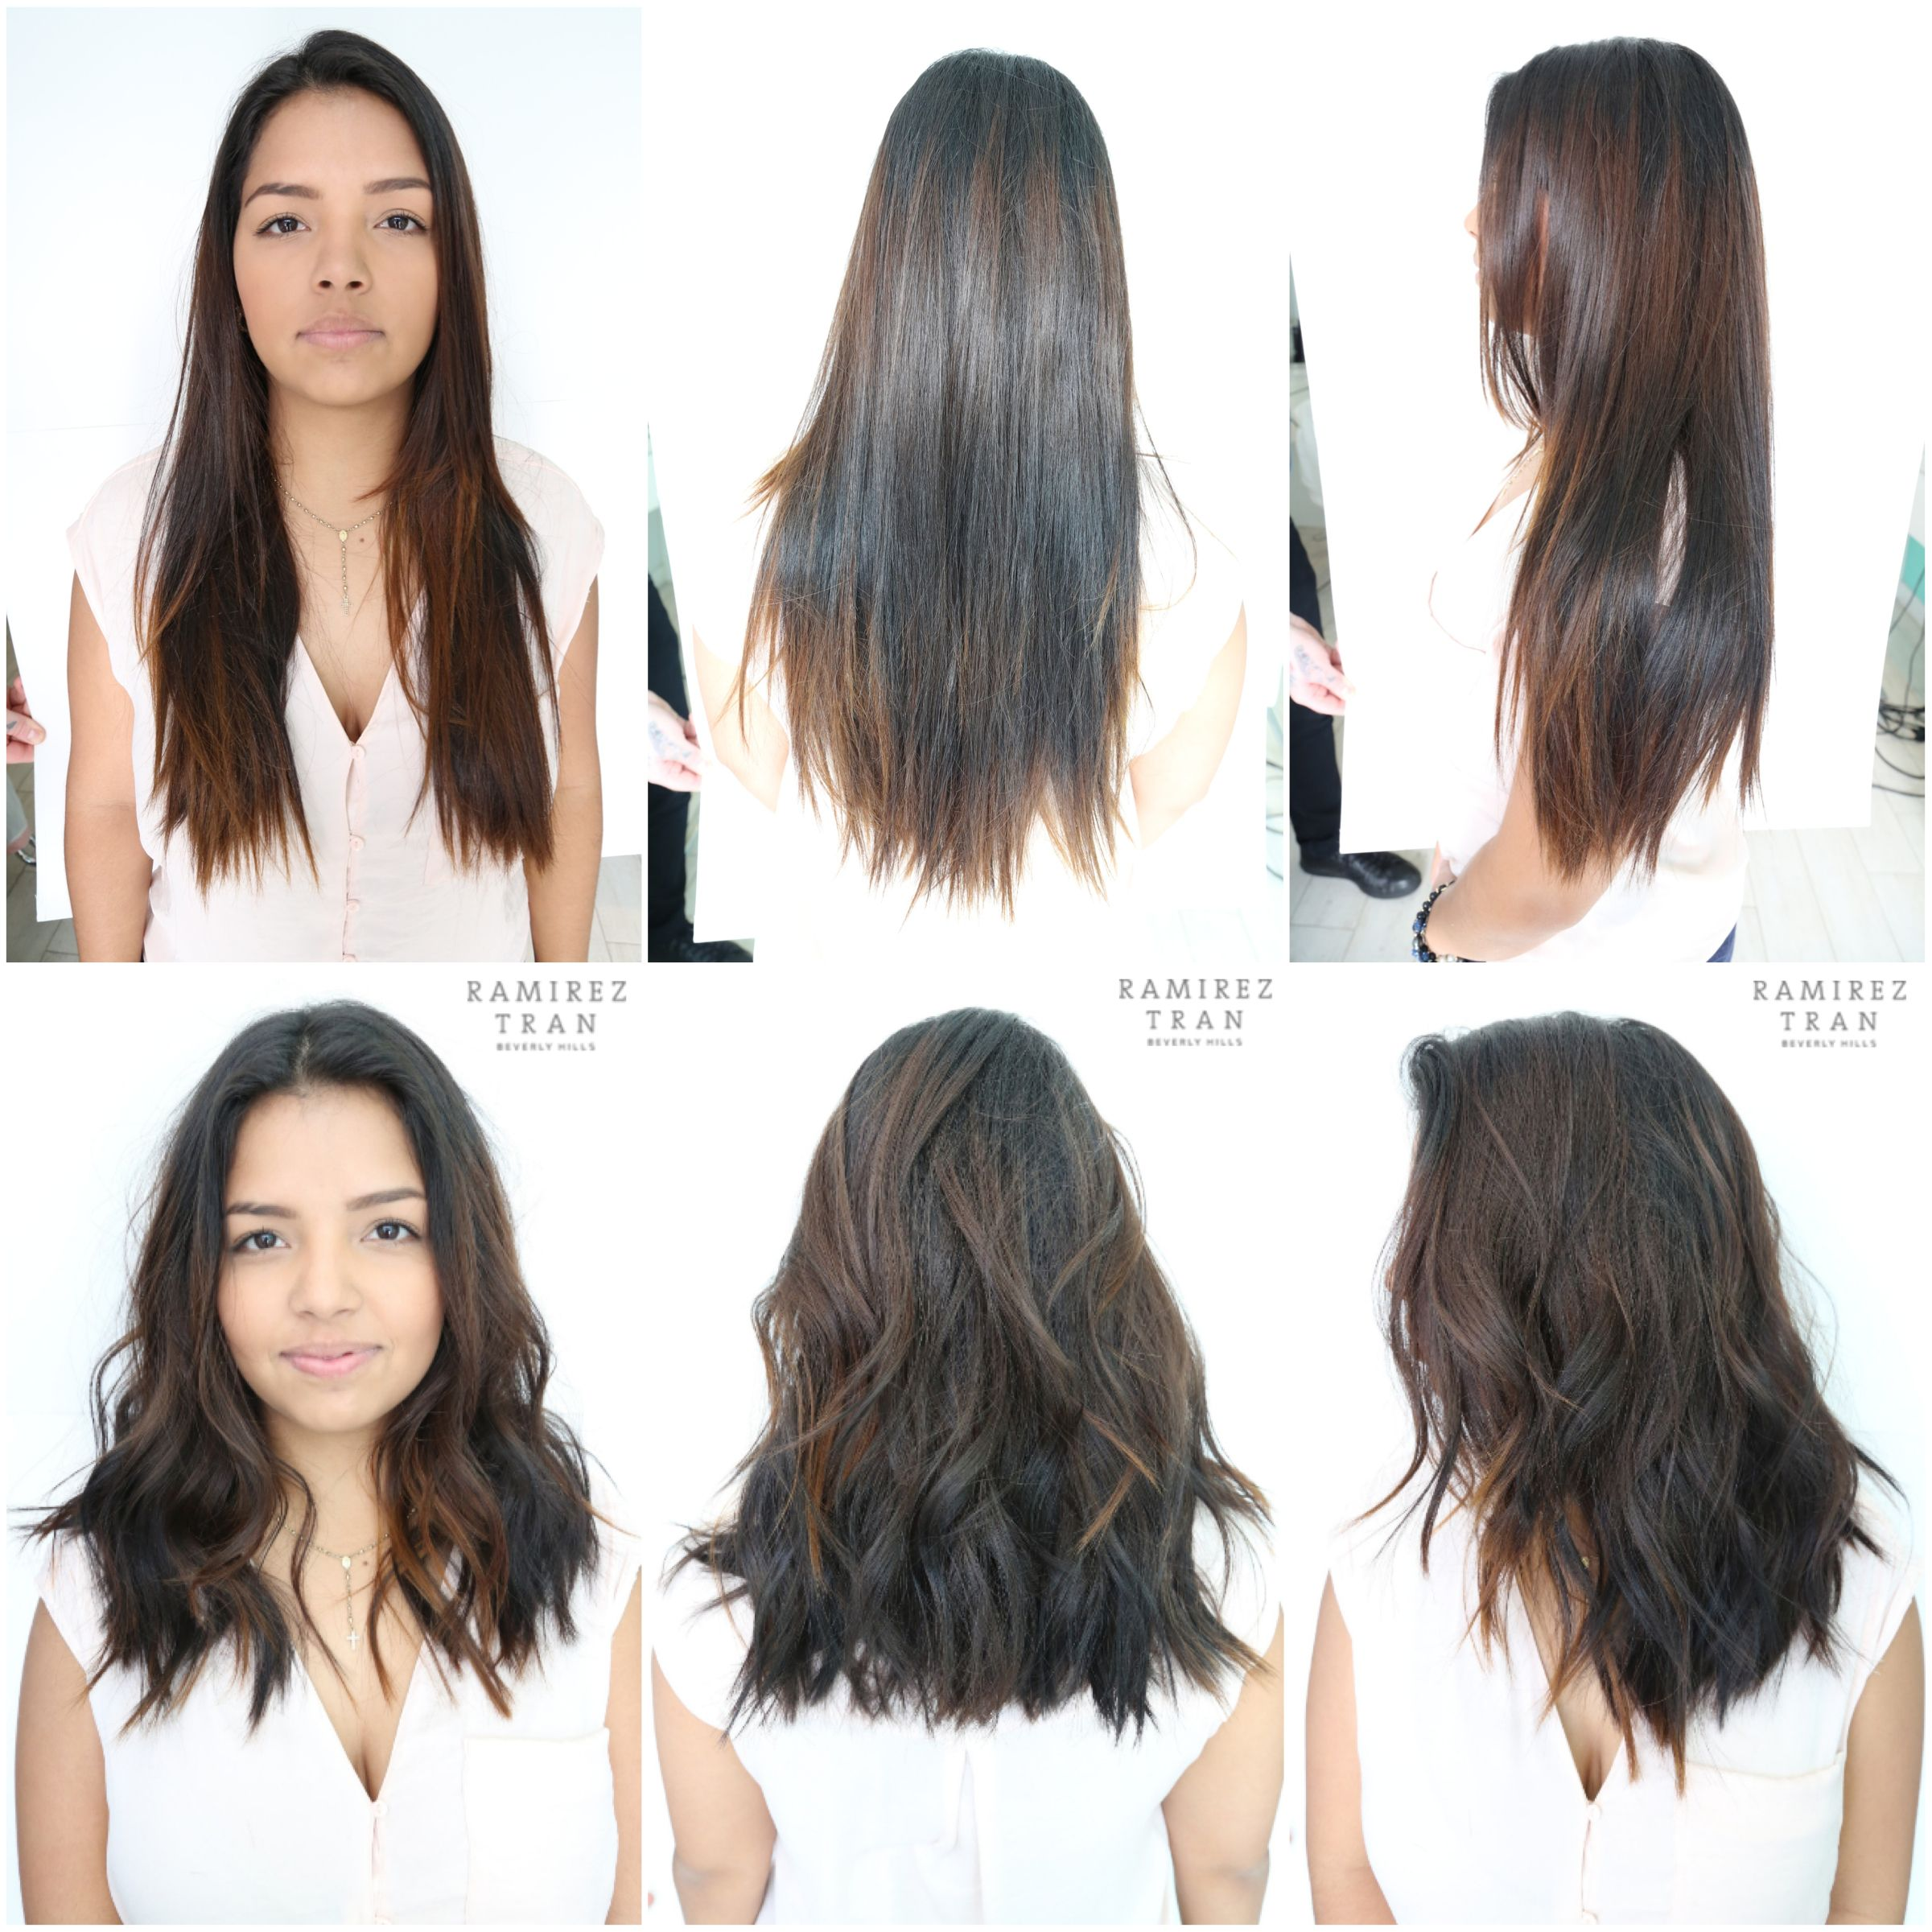 Magnificent A Fresh Cut With Long Layers Done The Salon In Miami Ramirez Hairstyles For Men Maxibearus